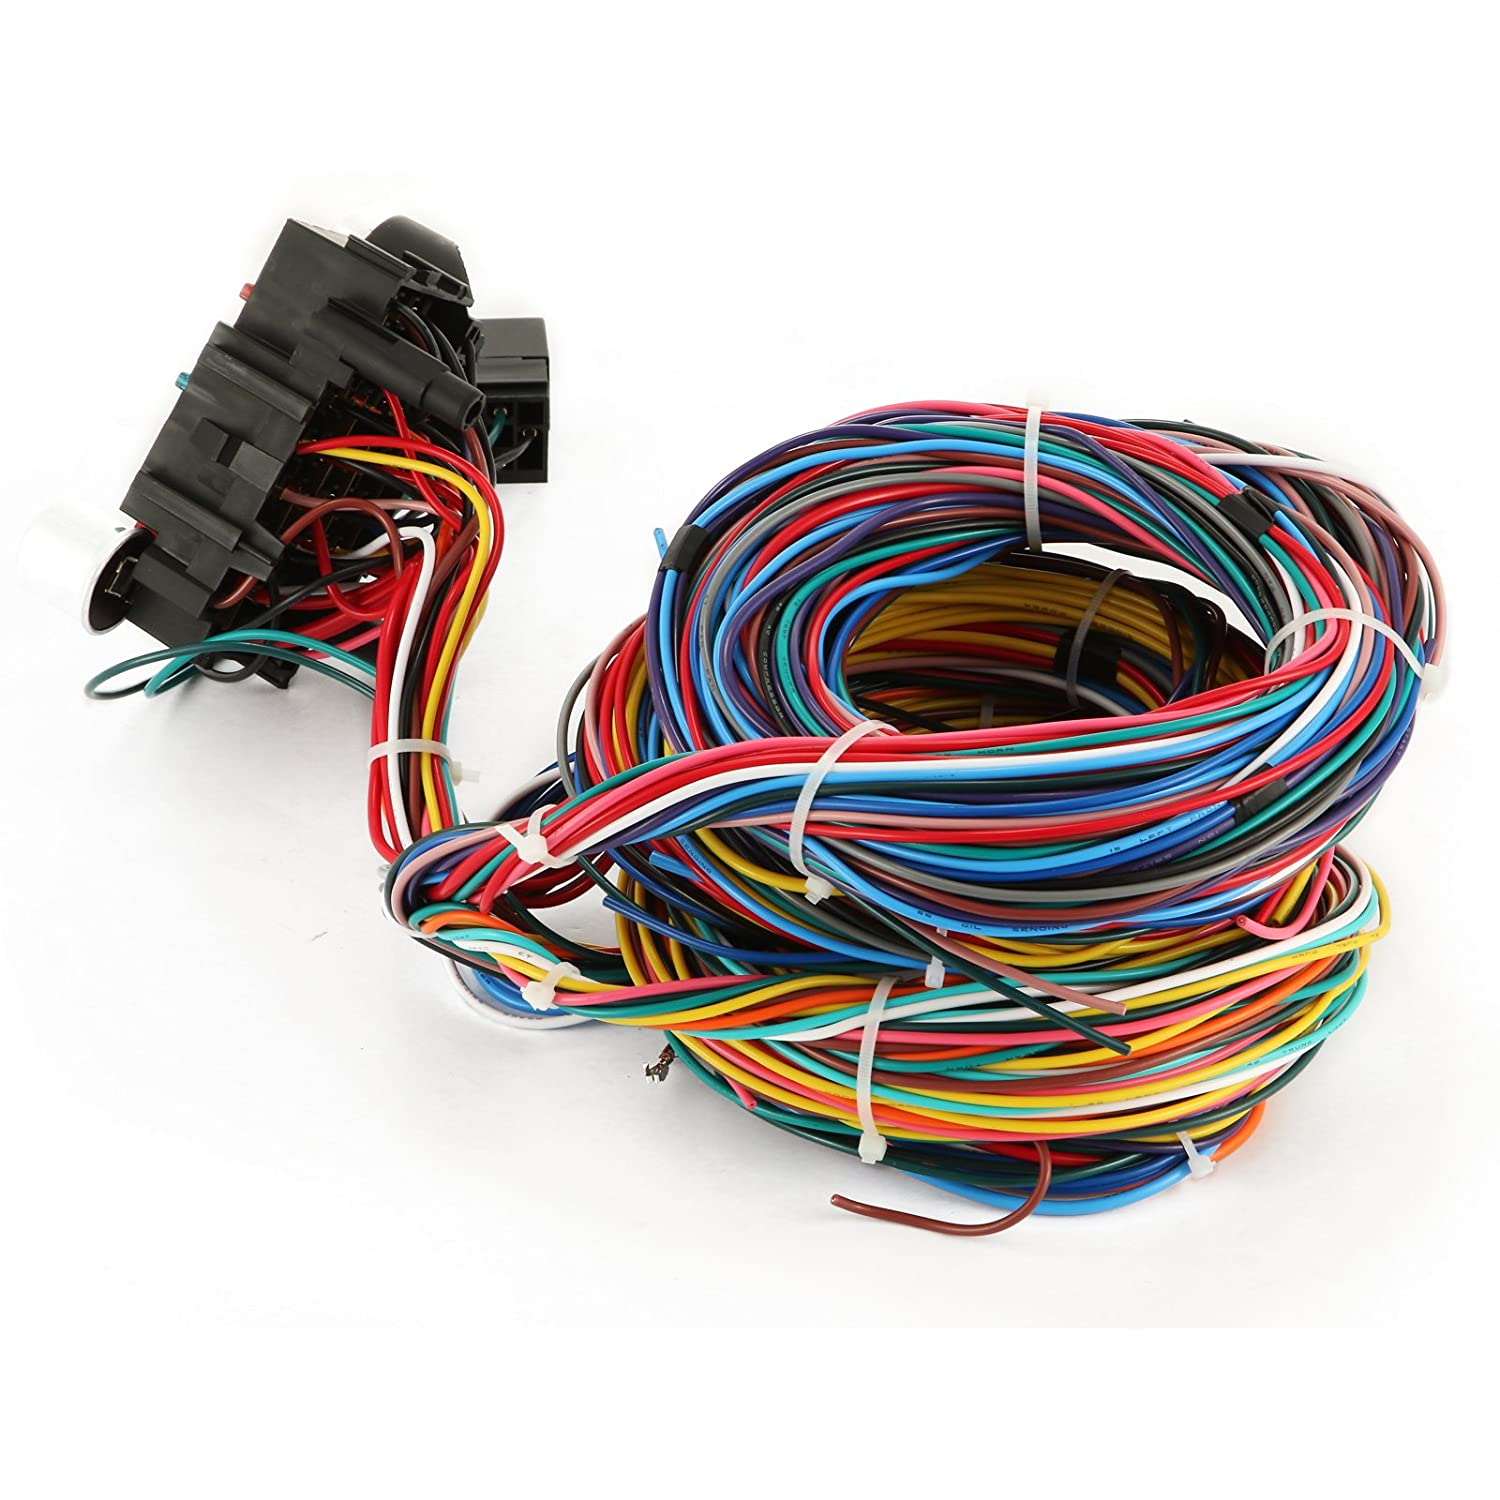 Mopar Wiring Harness Service Connector Manual Explained Classic Dodge Truck Amazon Com Mophorn 21 Circuit Kit Long Wires 1953